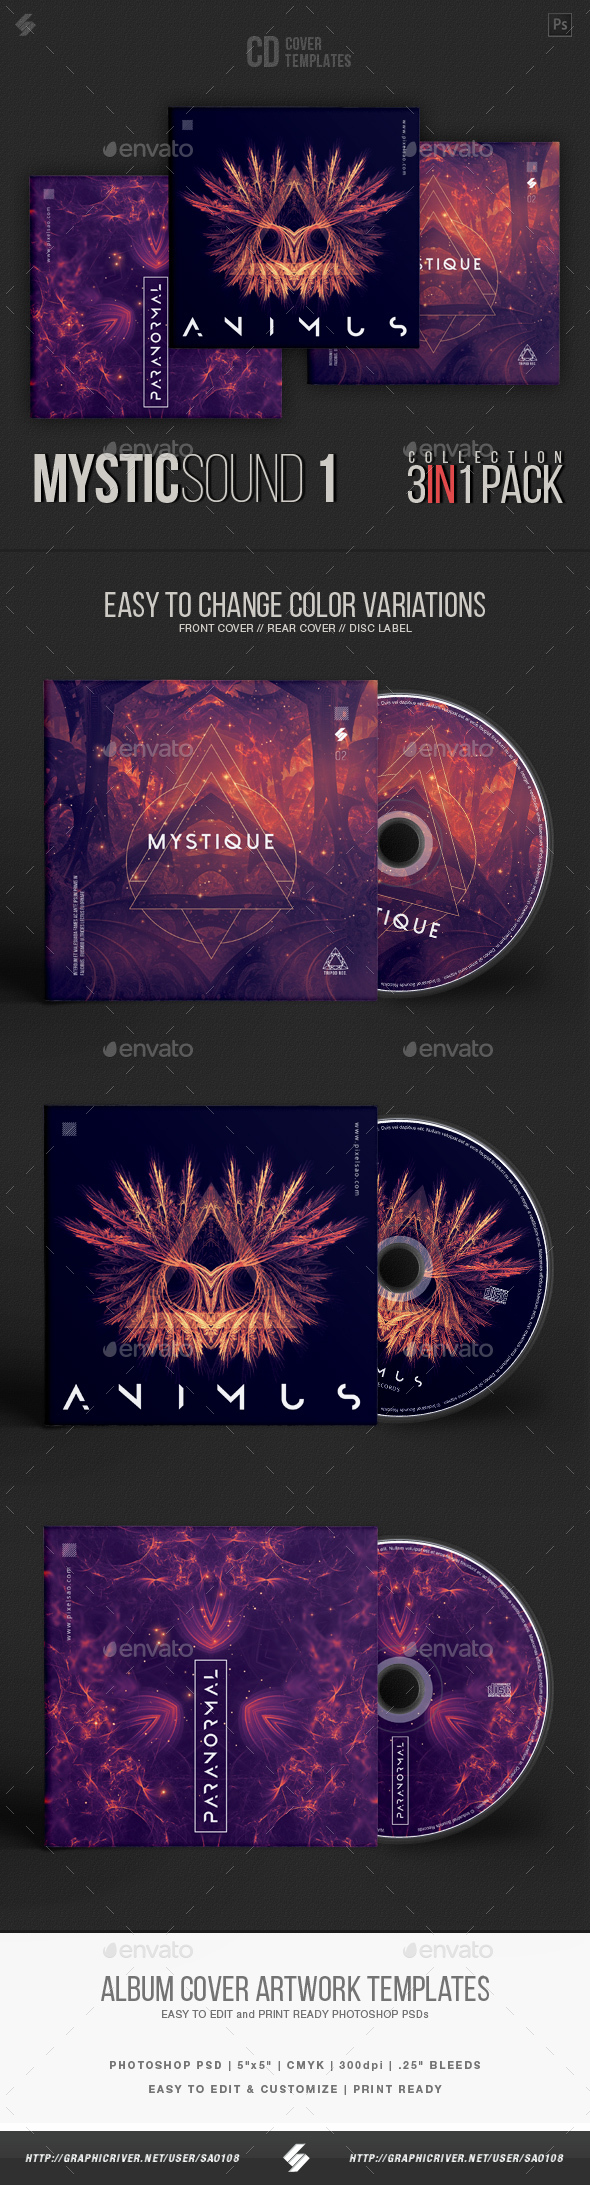 GraphicRiver Mystic Sound Collection CD Cover Artwork Templates Bundle 20840002